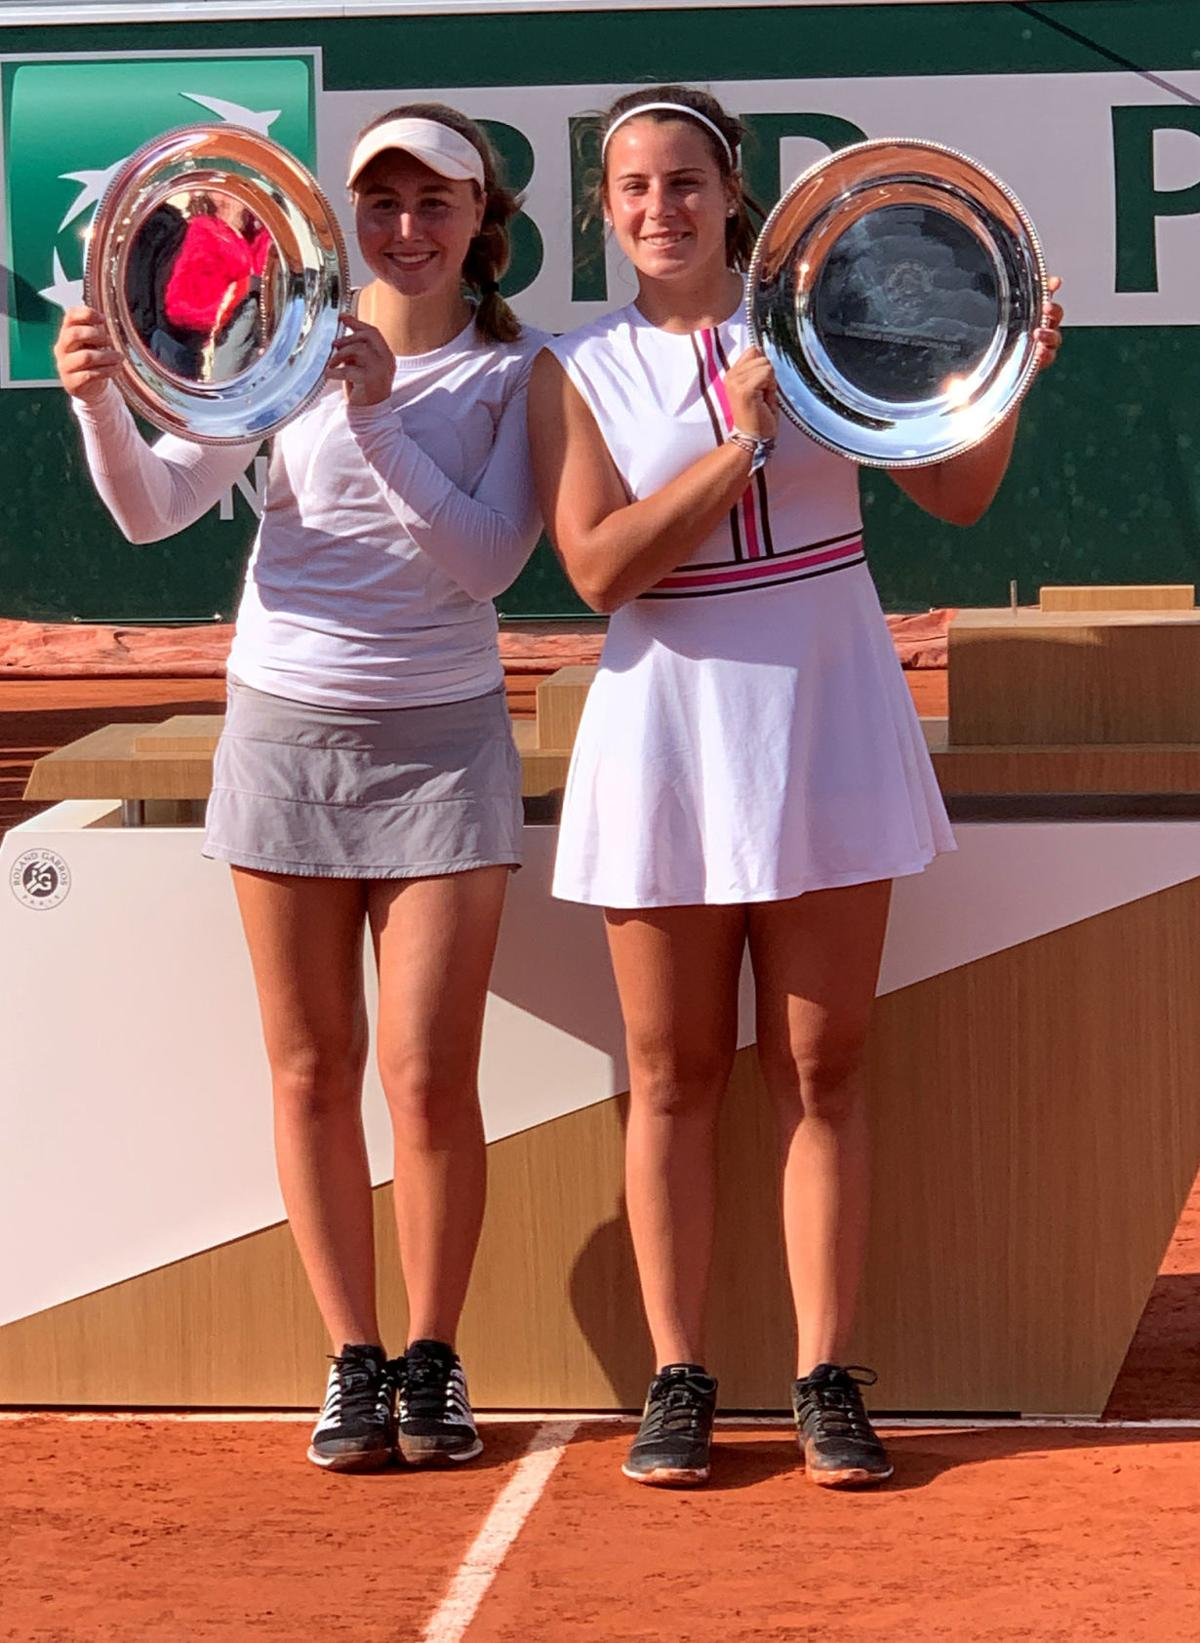 Emma Navarro Chloe Beck Junior French Open